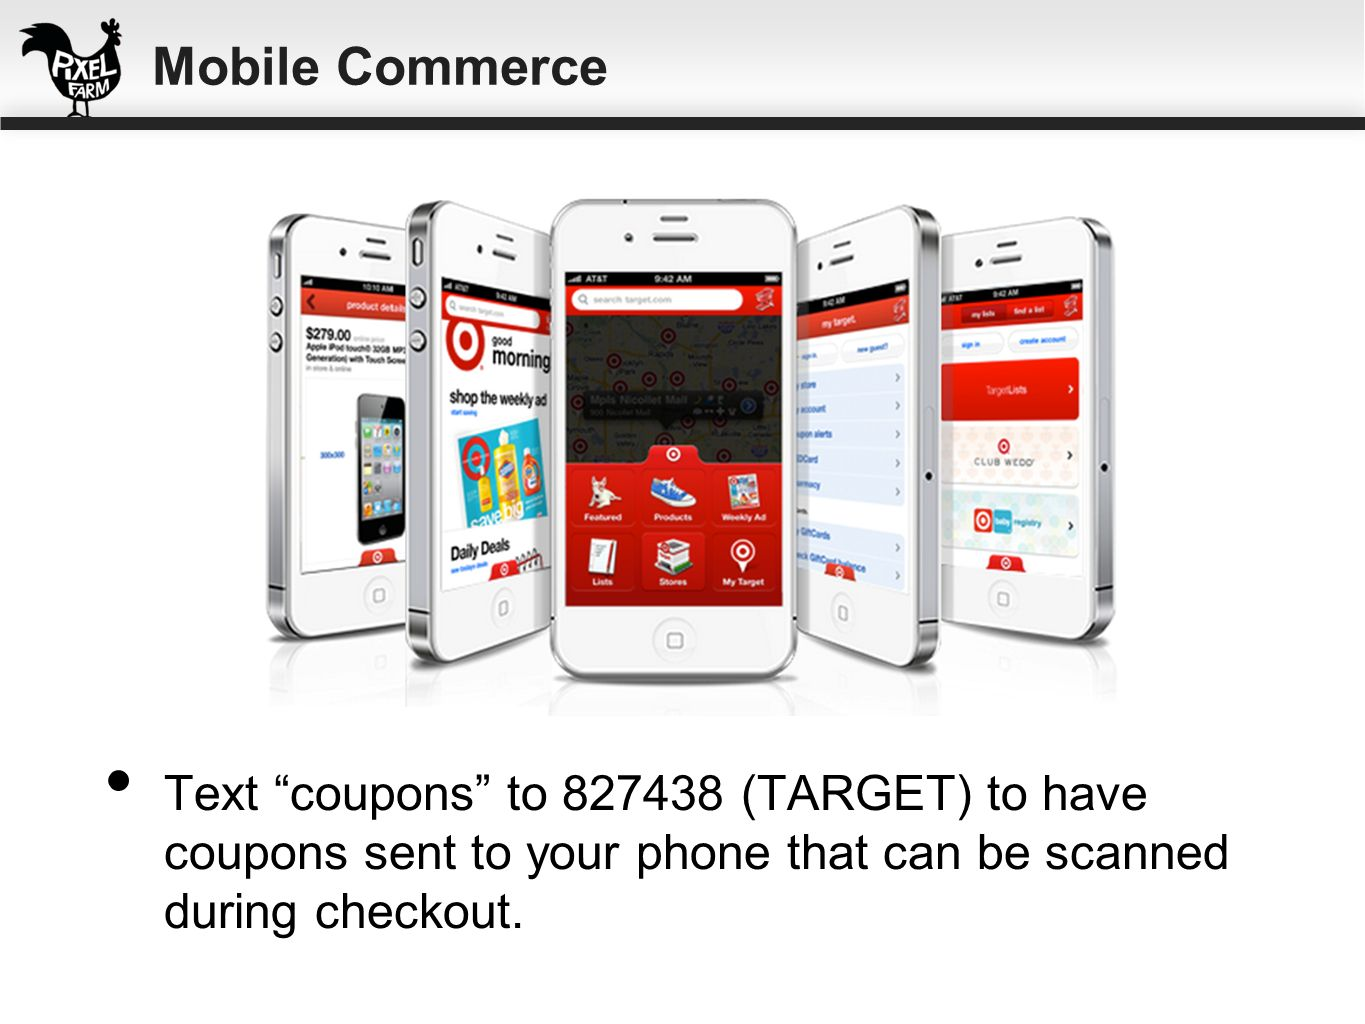 Mobile Commerce Text coupons to 827438 (TARGET) to have coupons sent to your phone that can be scanned during checkout.